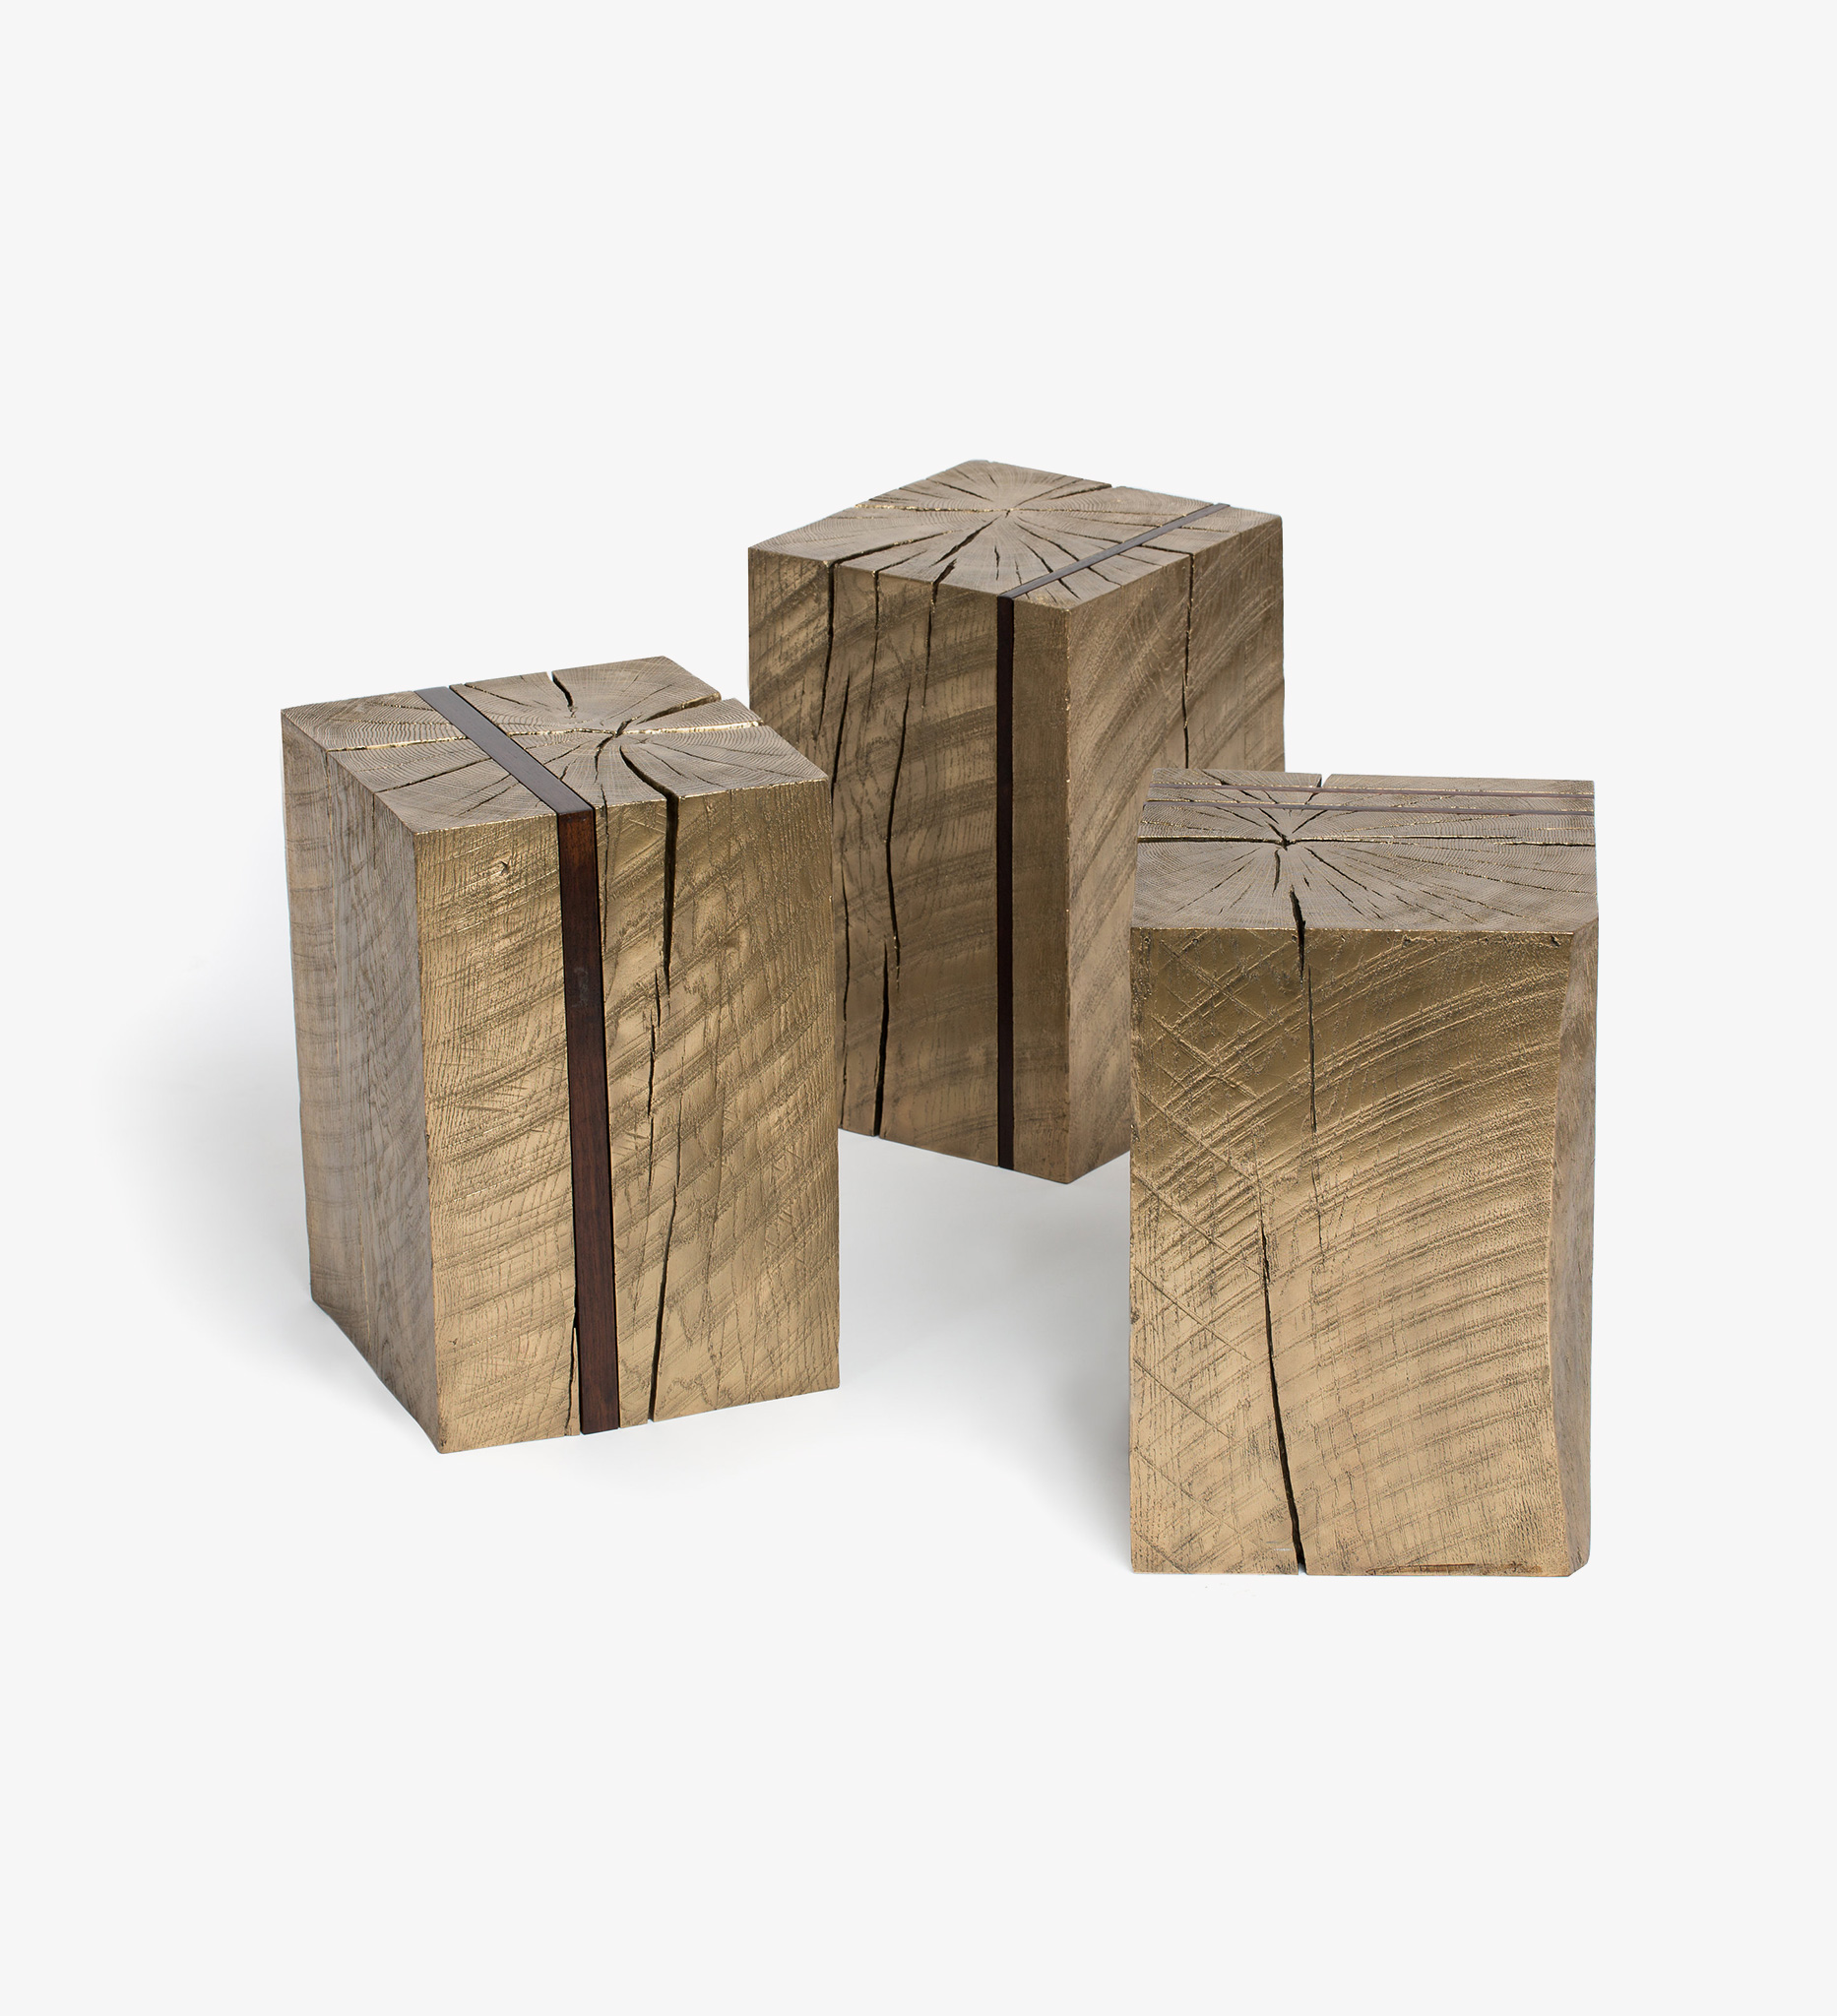 stool, bench, table, bronze, wood, natural, Torre, seating, chair